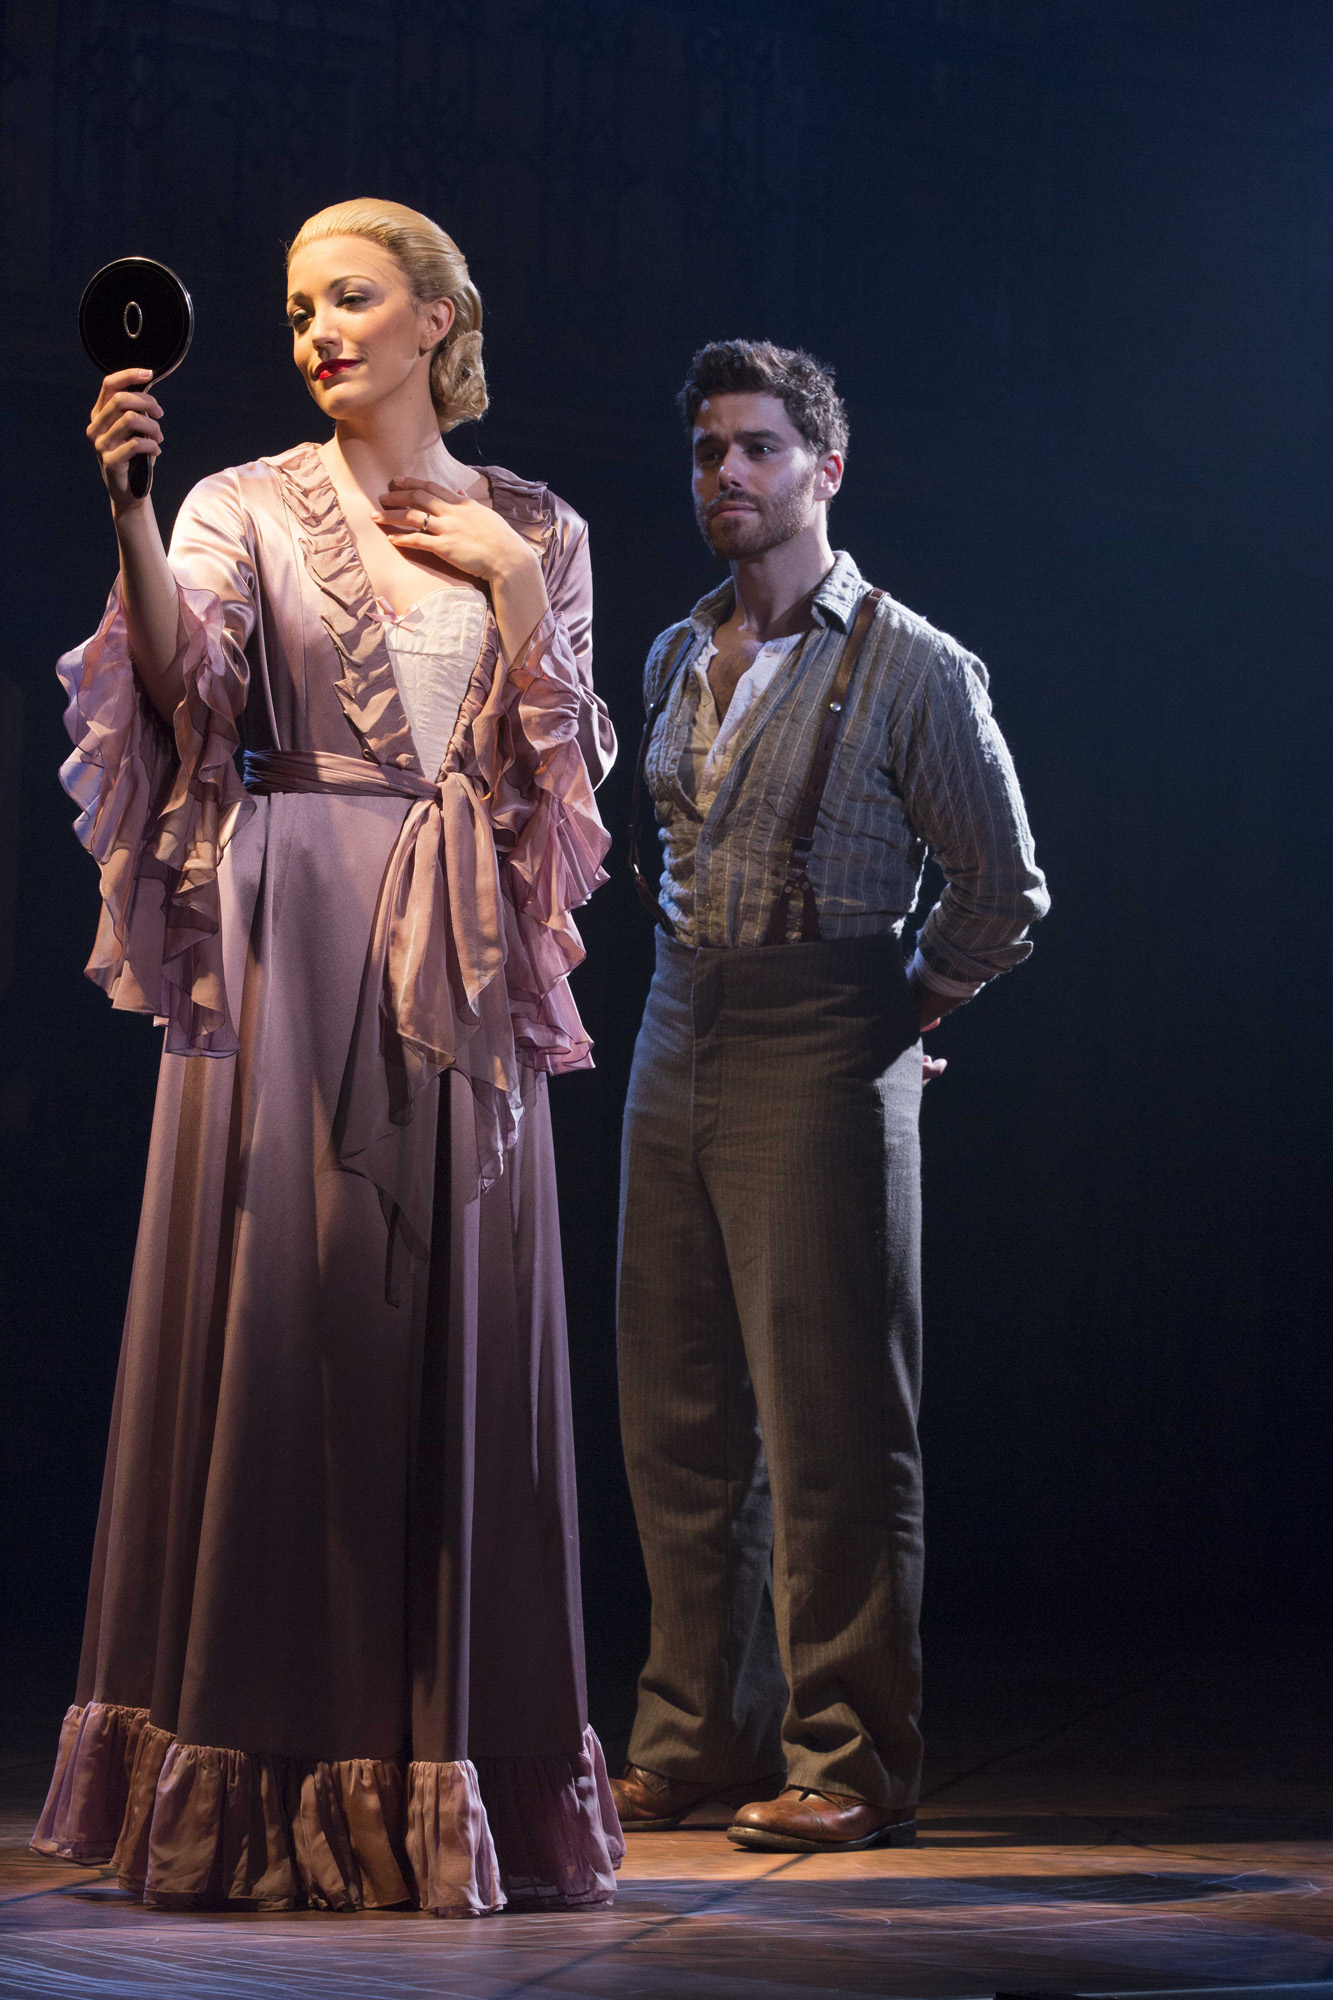 BWW Reviews: Theatre Under the Stars' EVITA has Gorgeous Heart and Grit